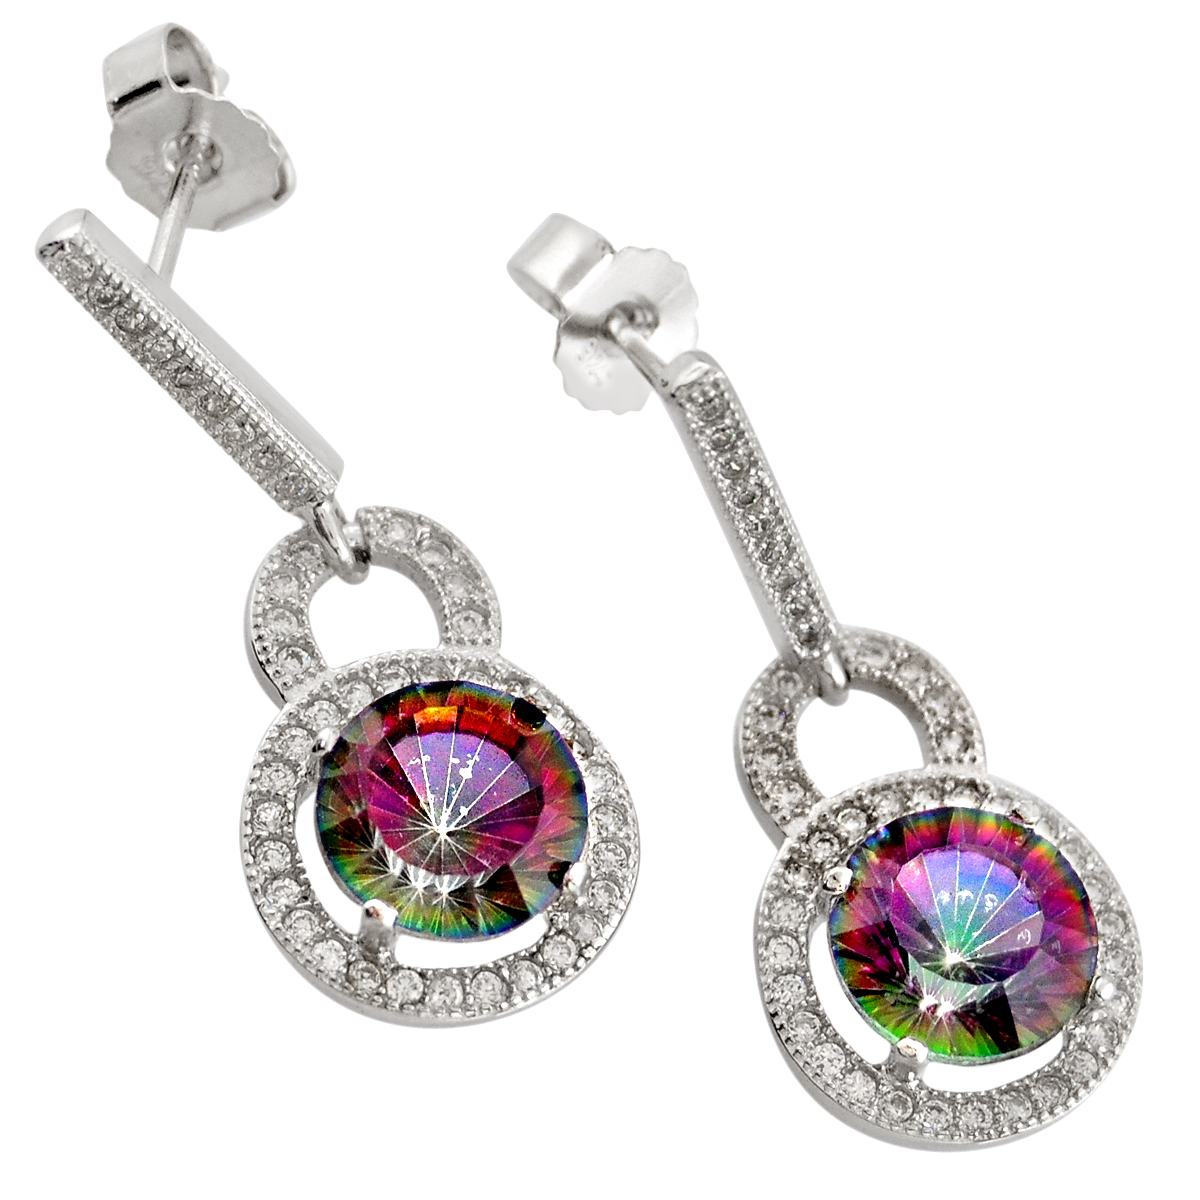 A pair of 925 silver drop earrings set with mystic topaz, L. 3cm.